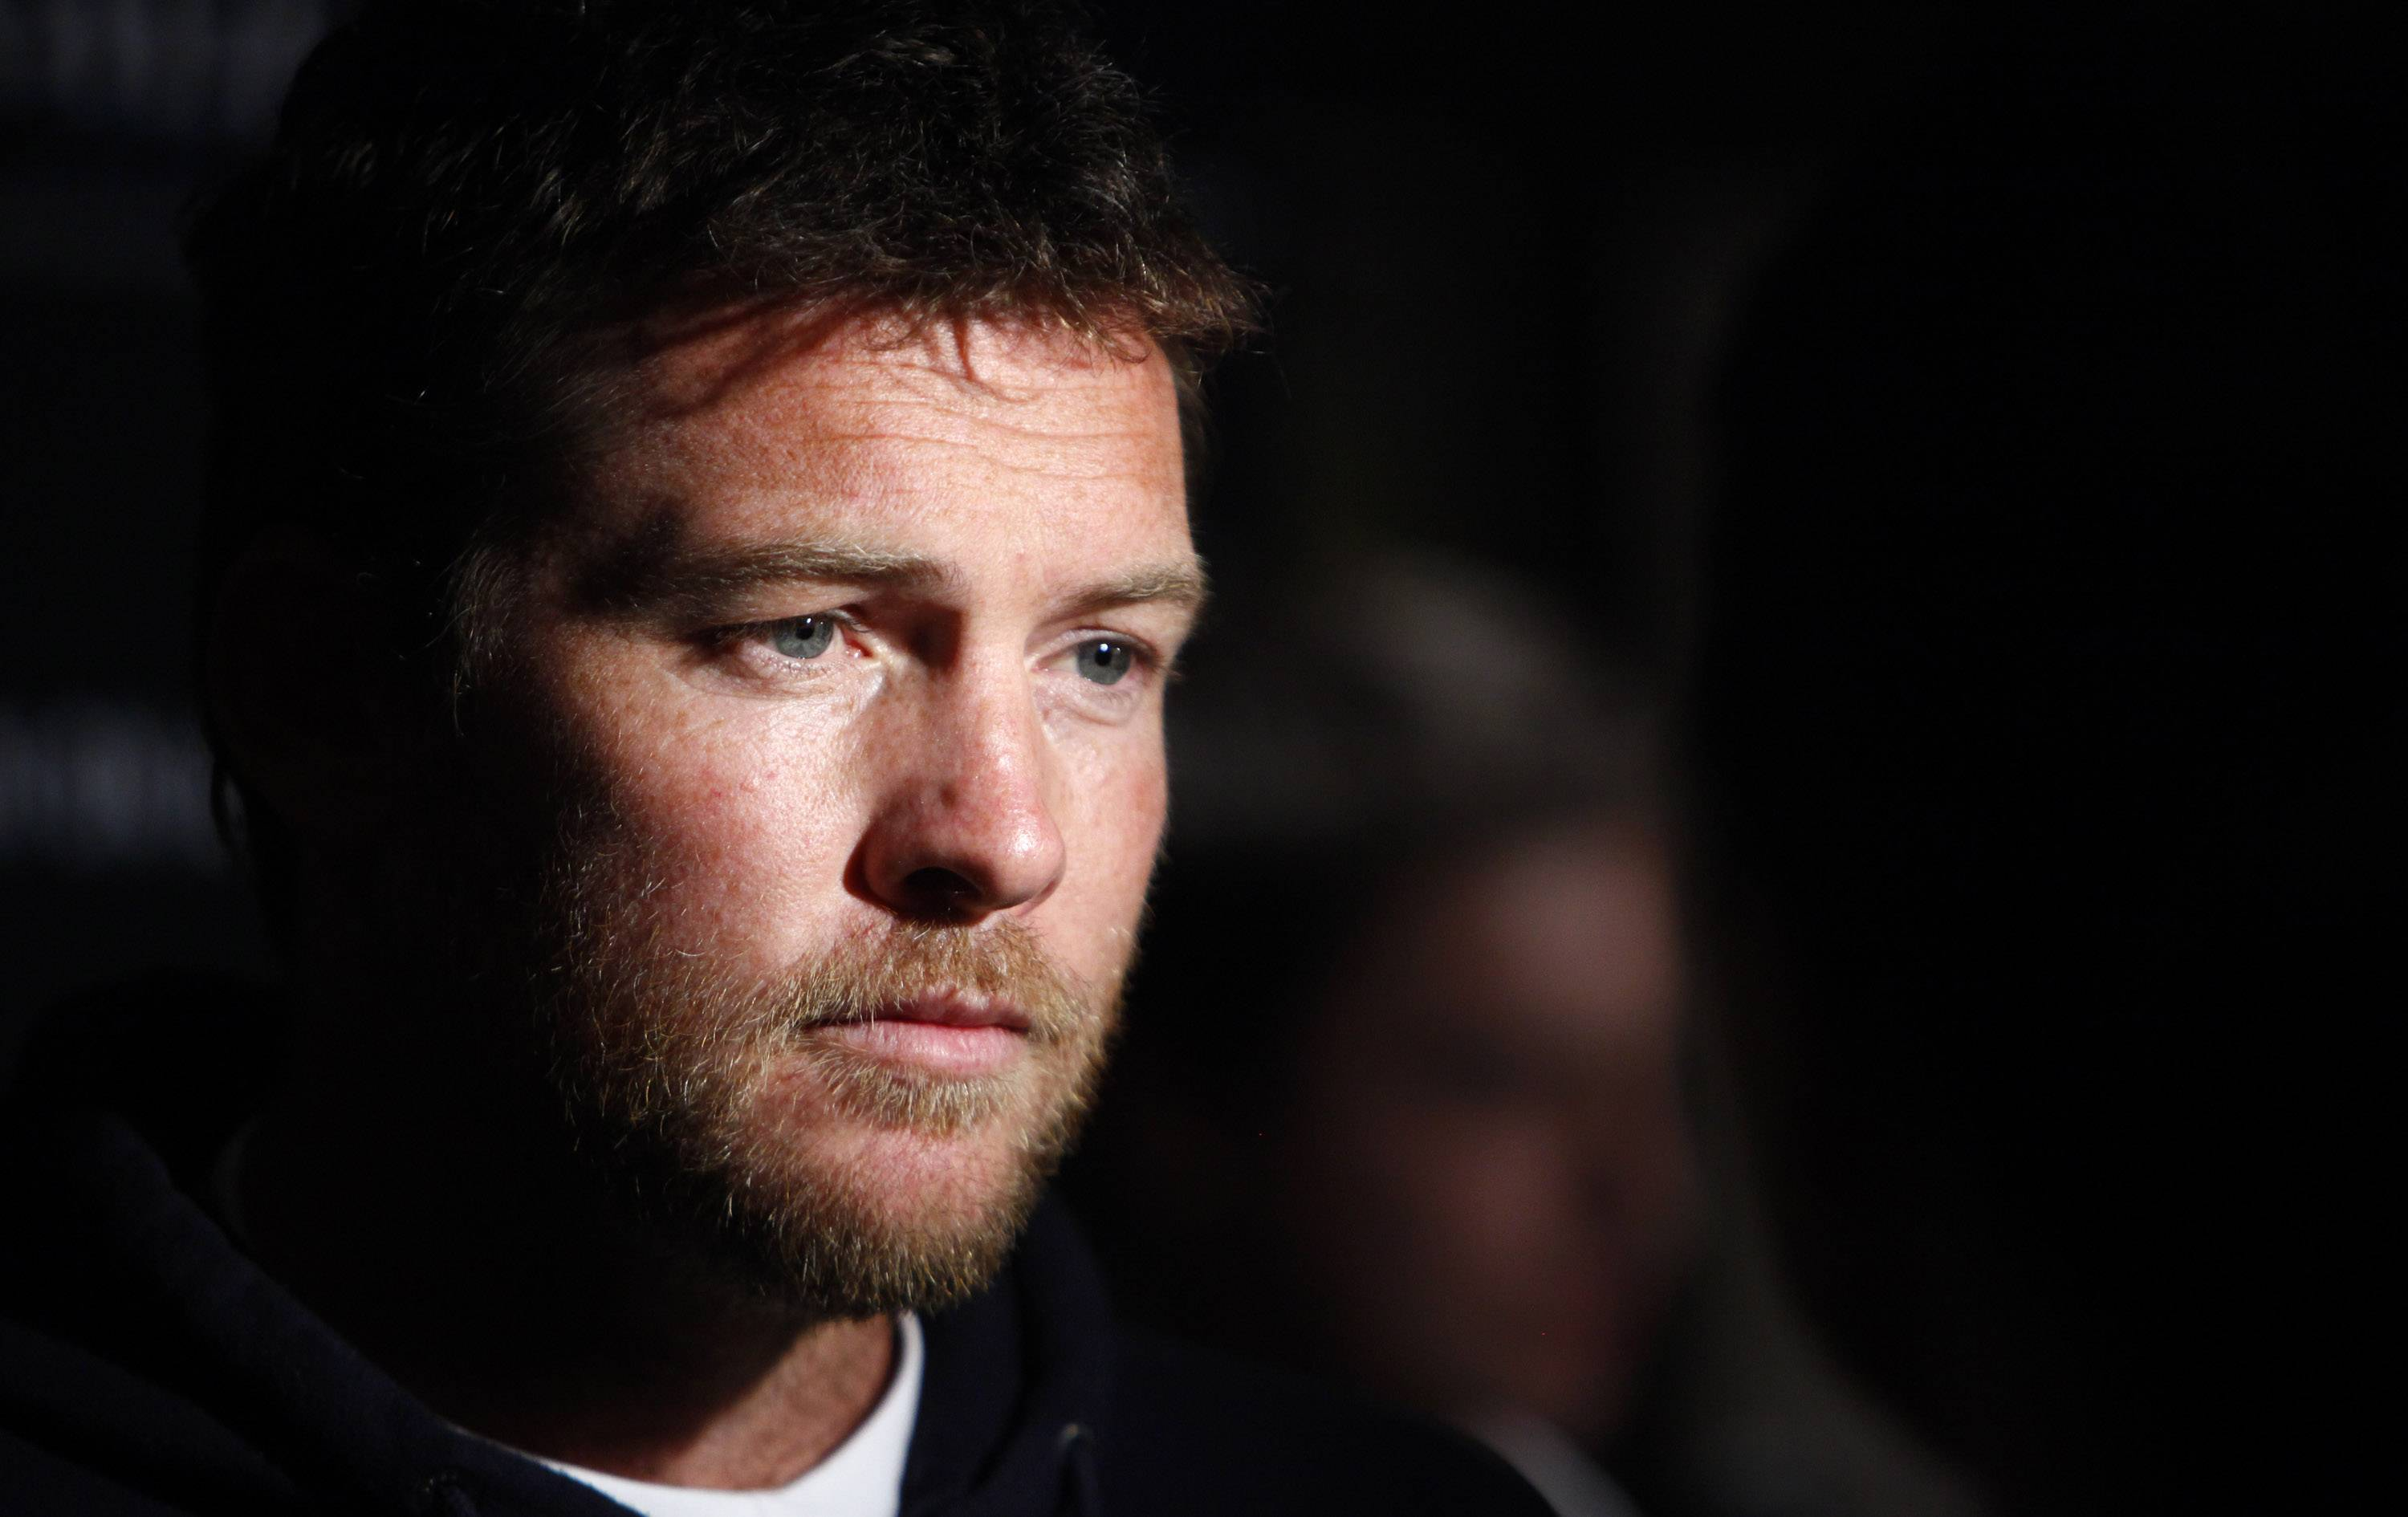 Police say Sam Worthington was arrested Sunday in New York City on charges of punching a photographer after the man kicked Worthington's girlfriend in the shin. The Australian actor was released on a desk appearance ticket and is due back in court on Feb. 26.